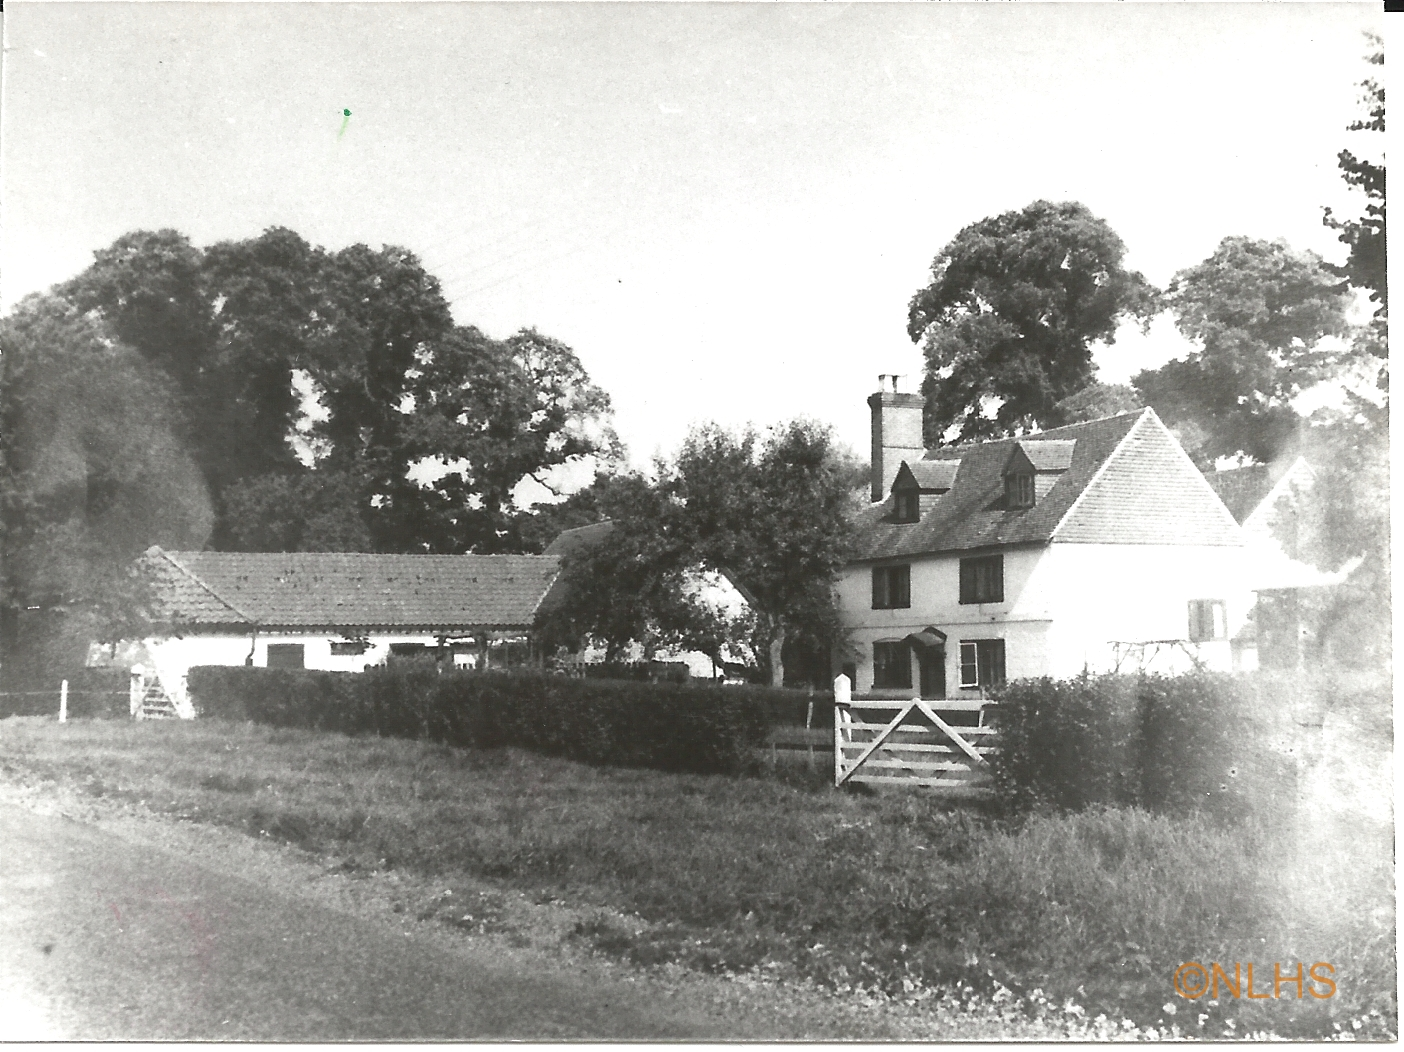 Sturtwood Farm in 1940 - the home of the Jones family